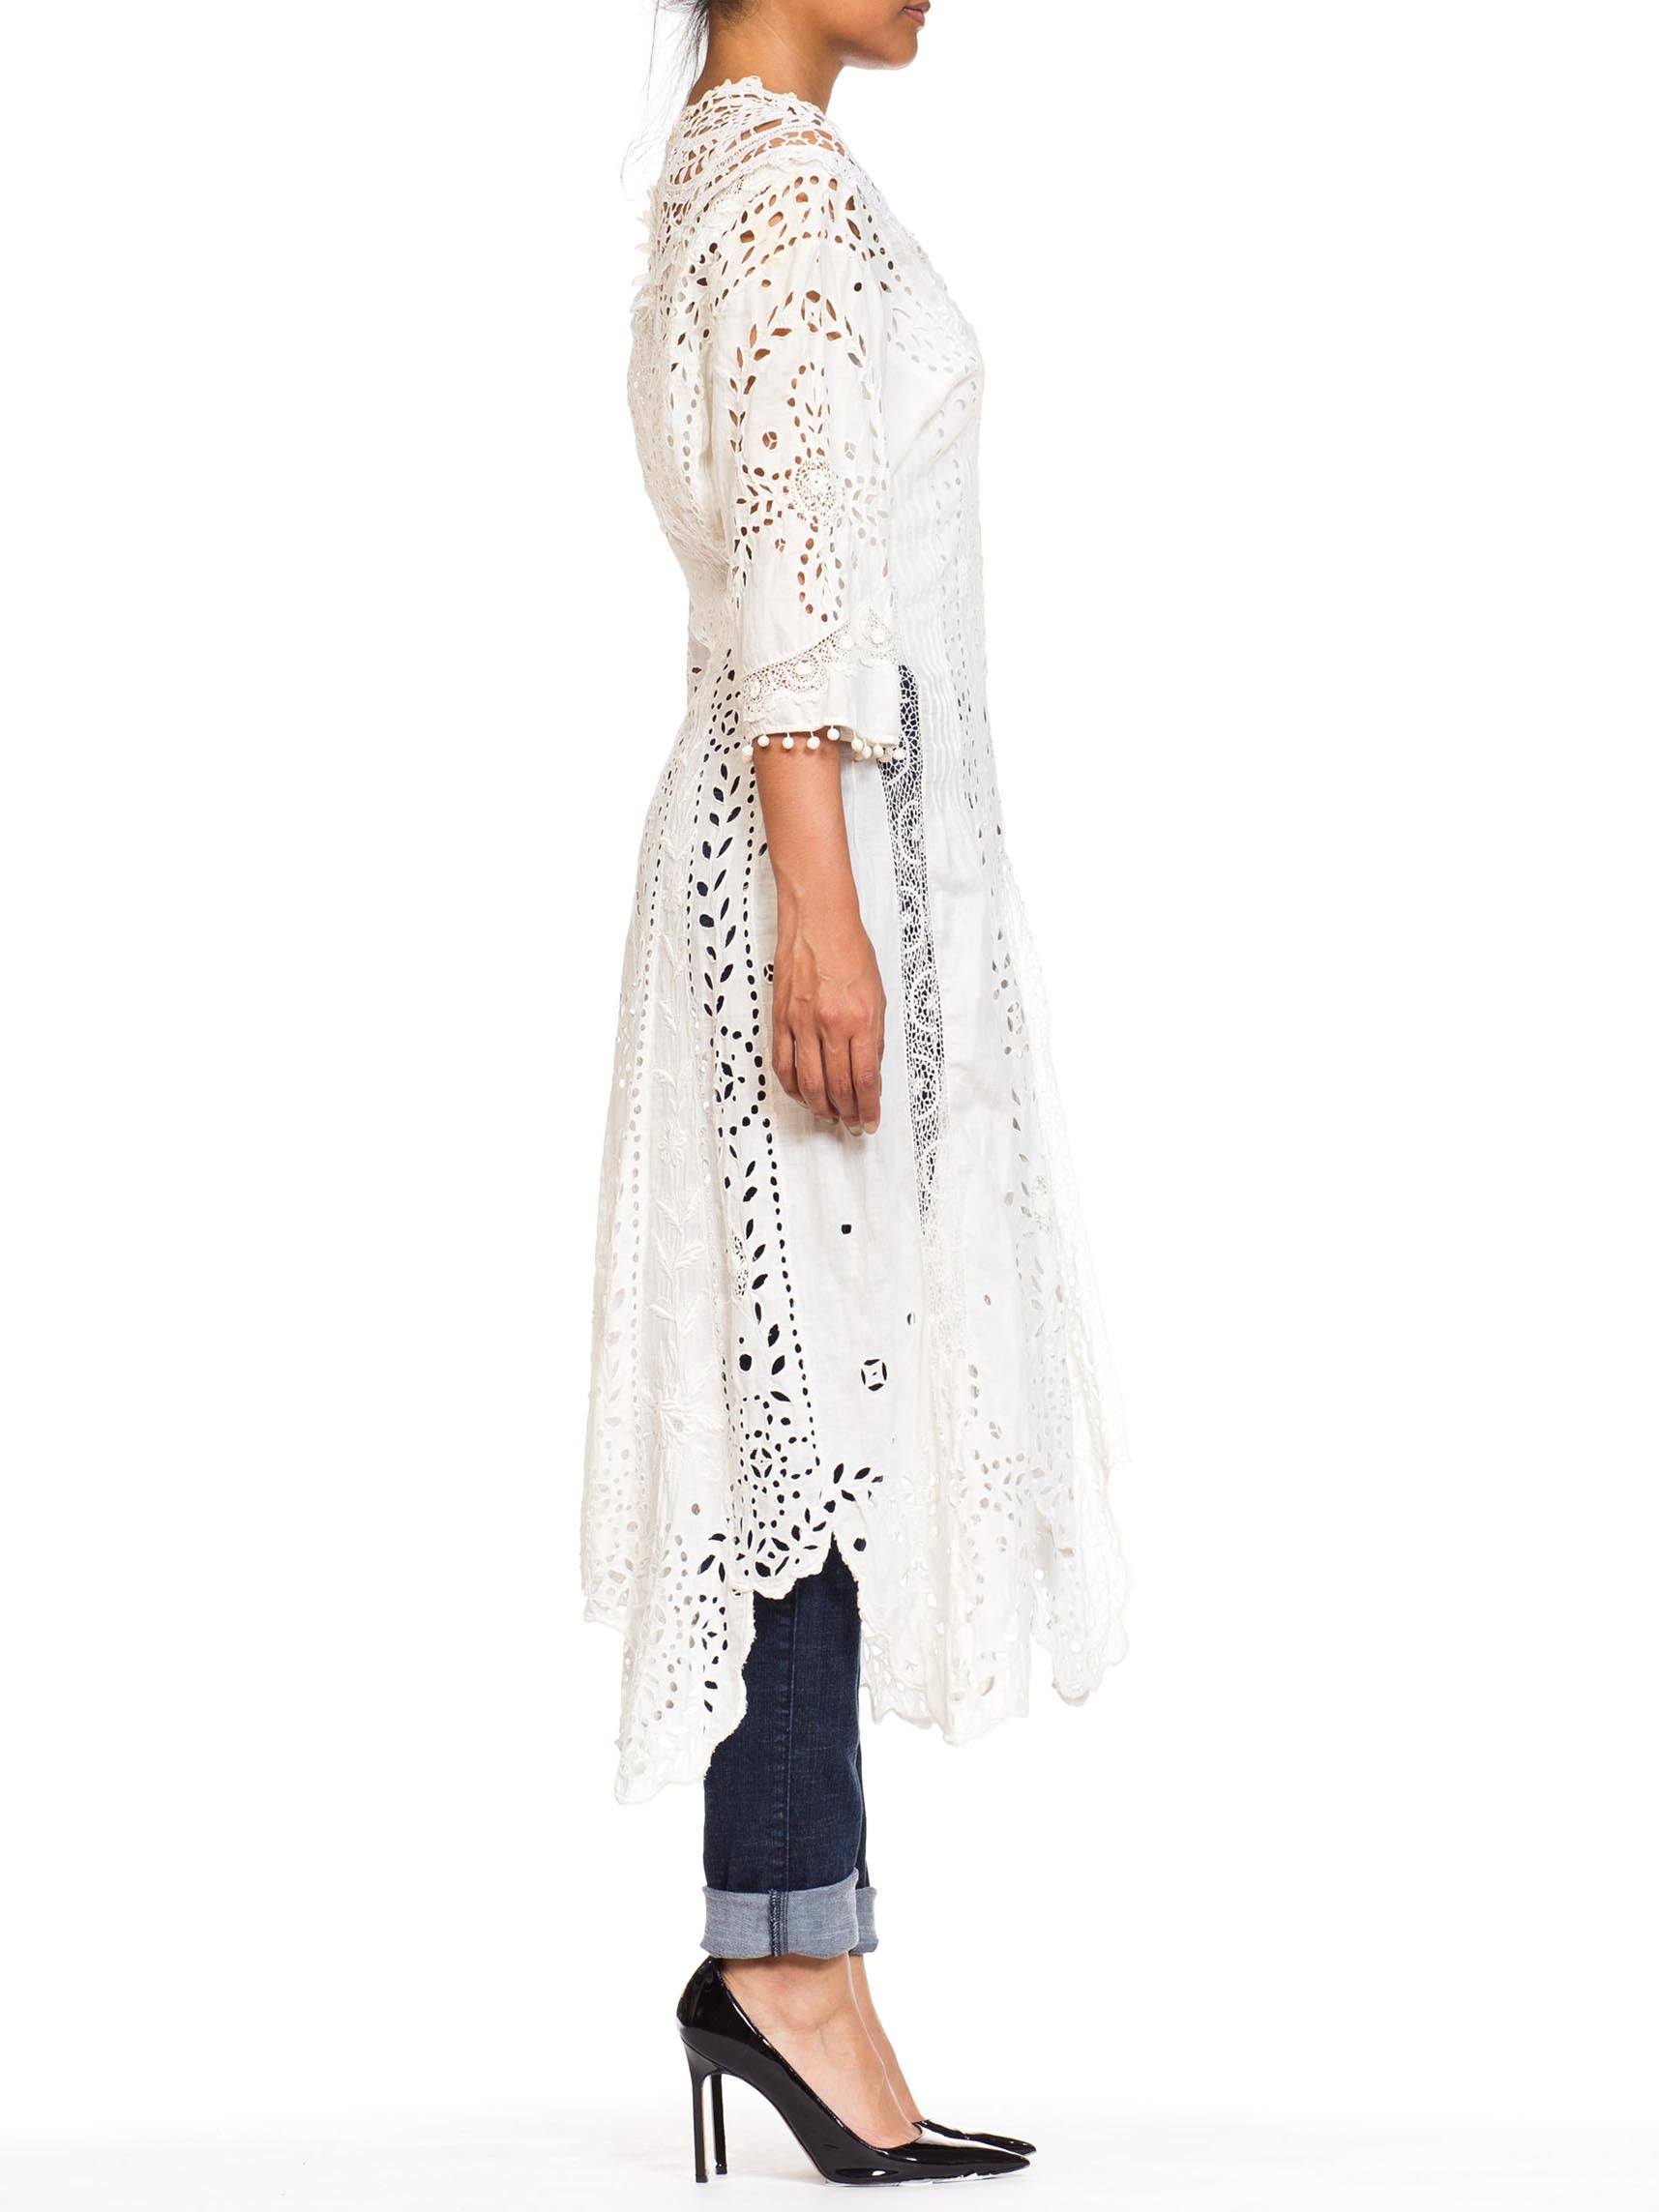 1890S White Victorian Linen & Cotton Hand Made Eyelet Irish Crochet Lace Duster Dress